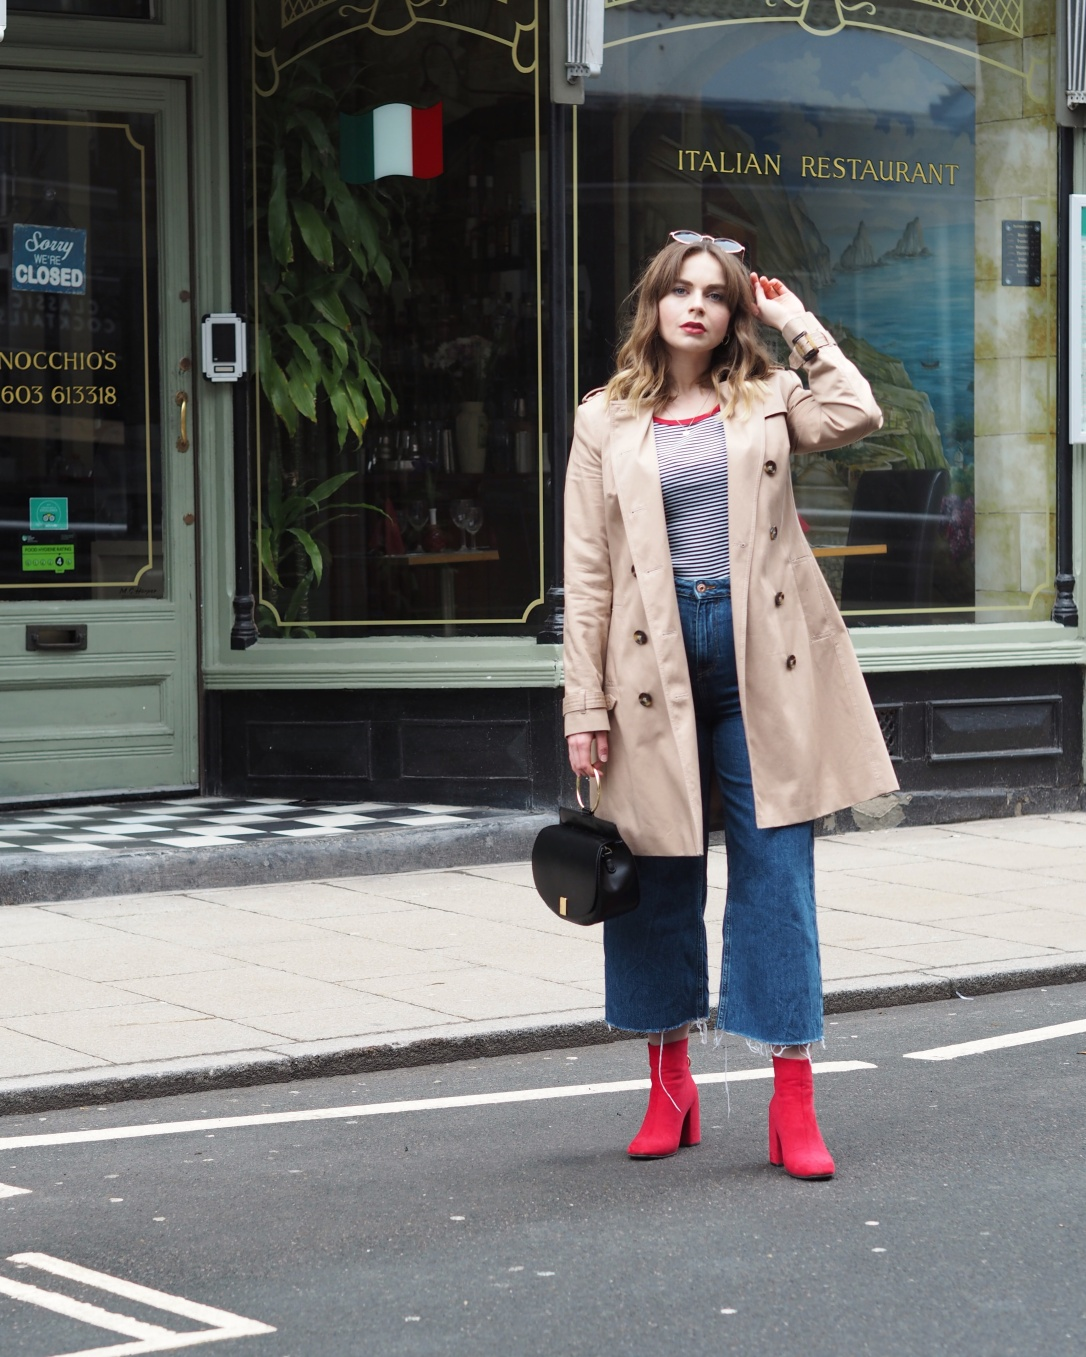 Styling a trench coat for spring